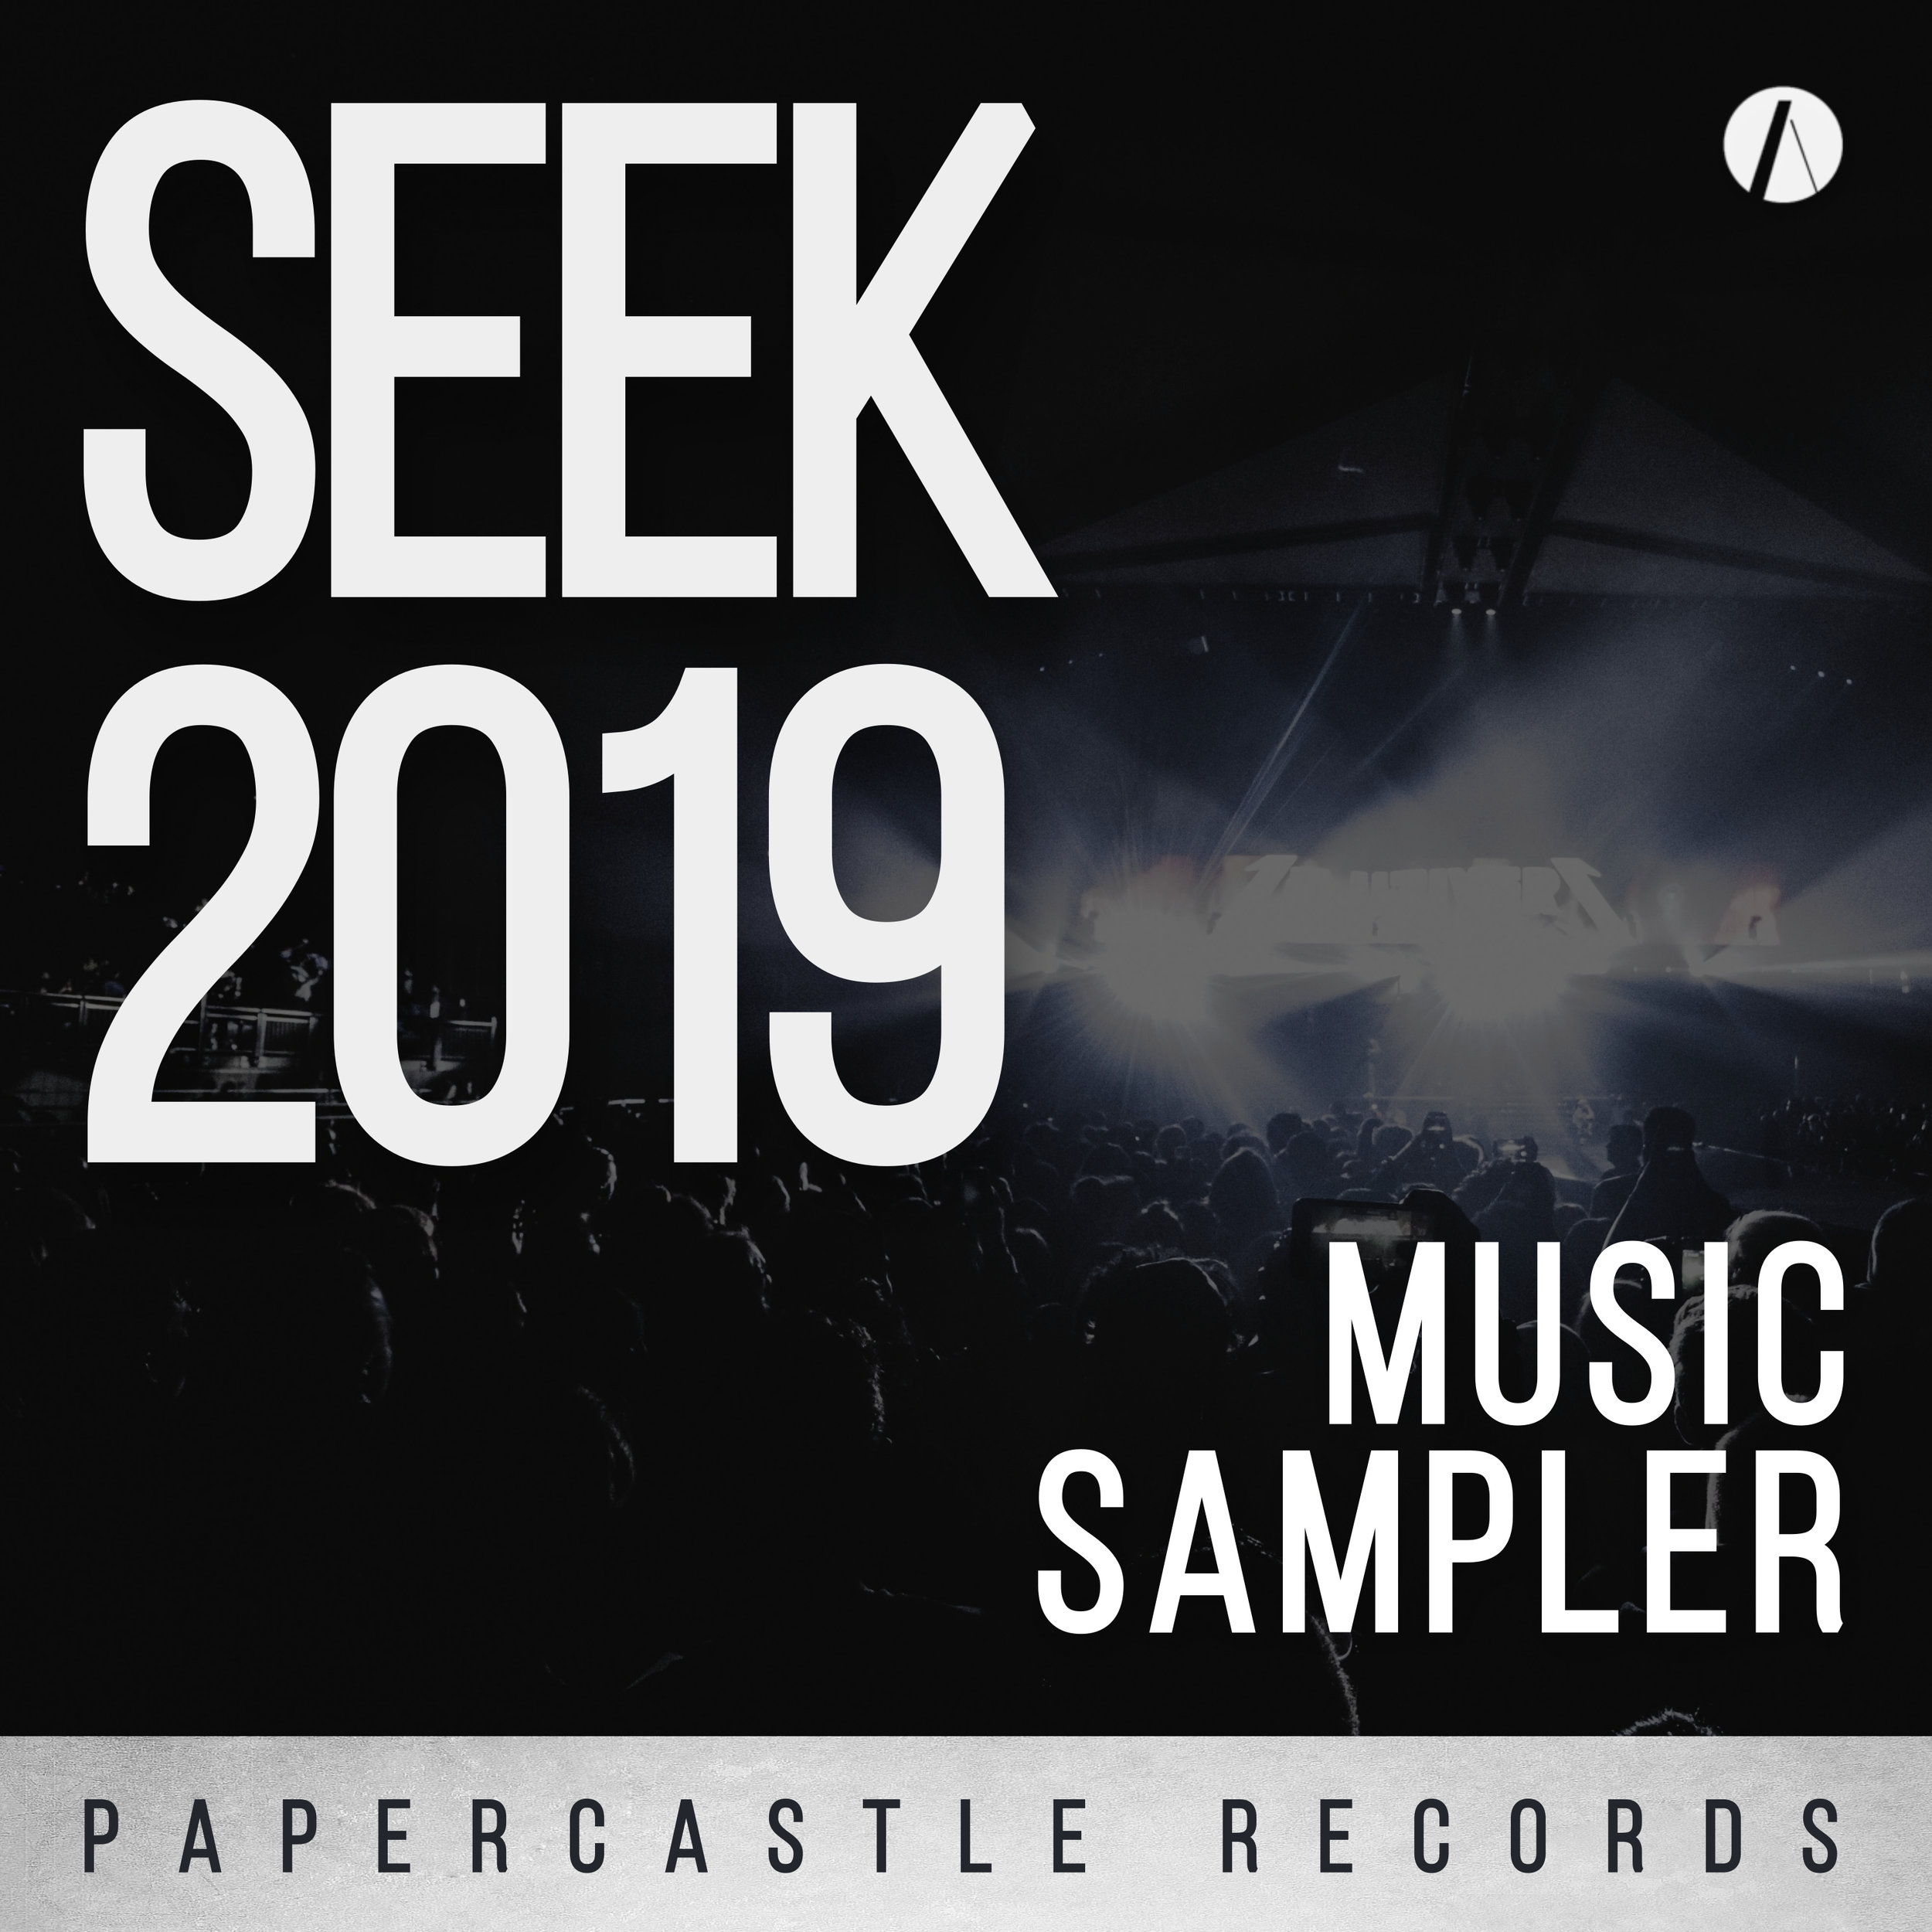 SEEK2019 Music Sampler by Papercastle Records